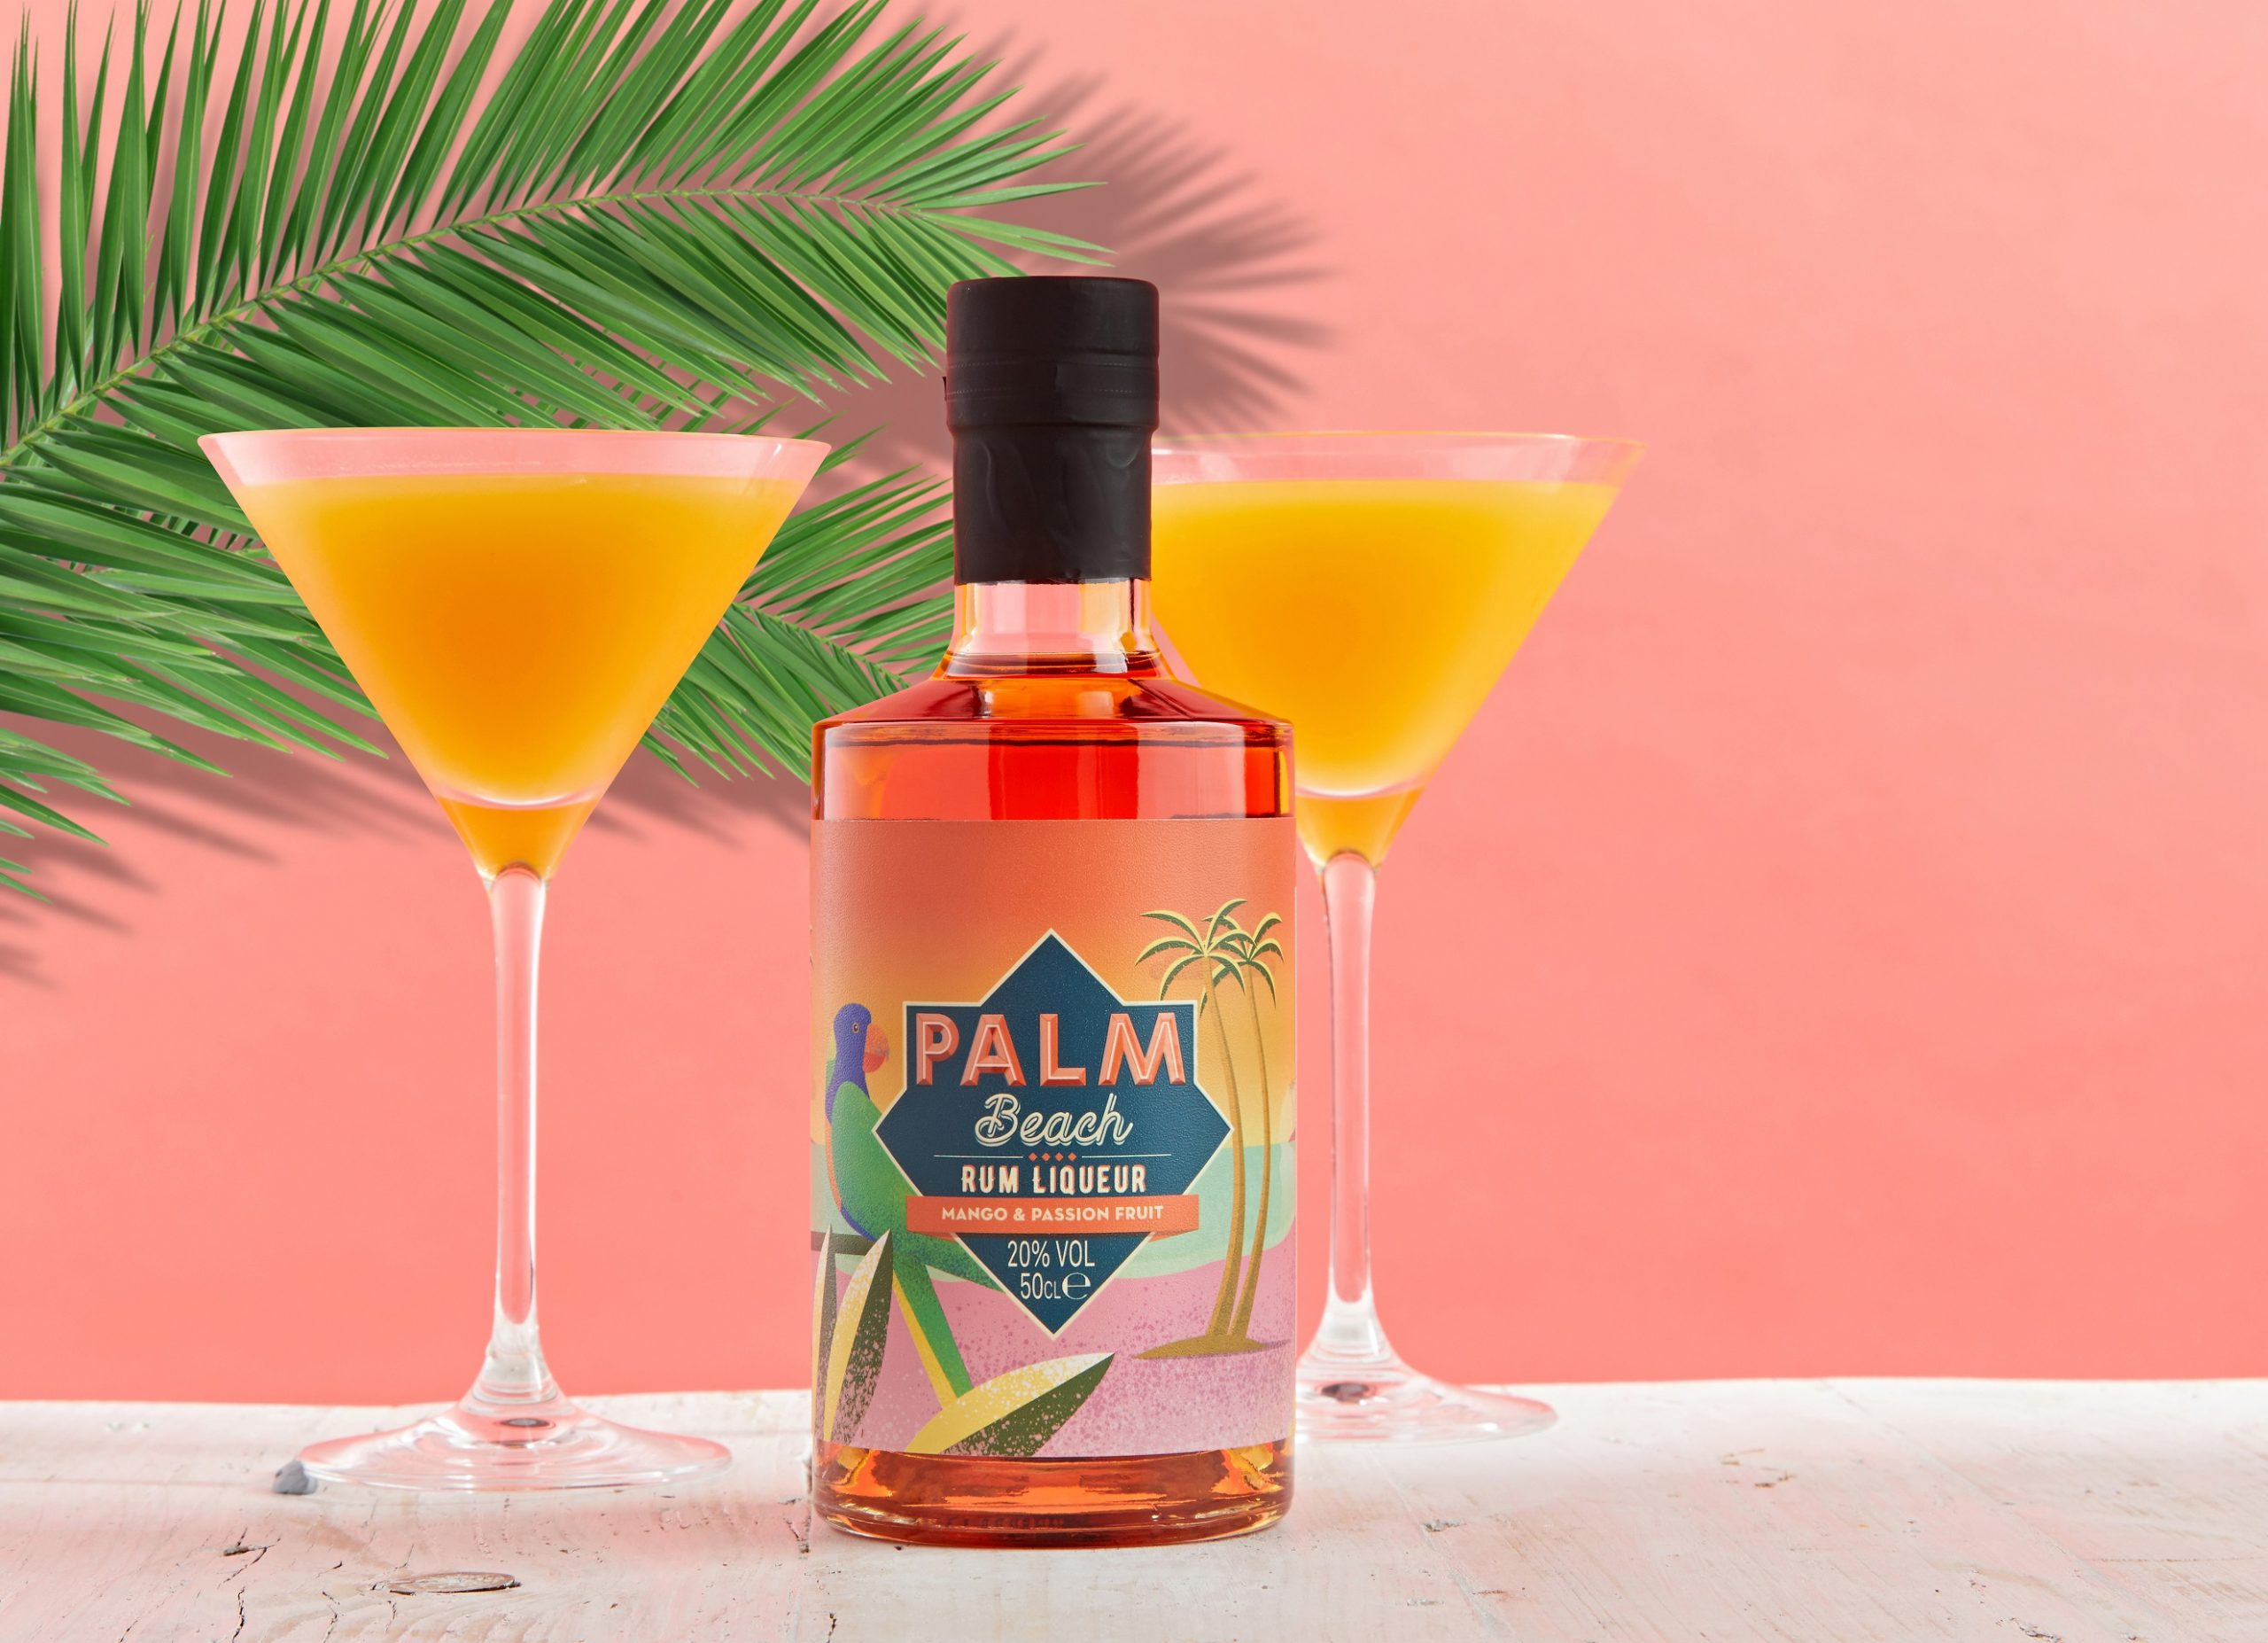 NEW! Palm Beach - Mango & Passionfruit. Cocktail - Reggae Star Martini